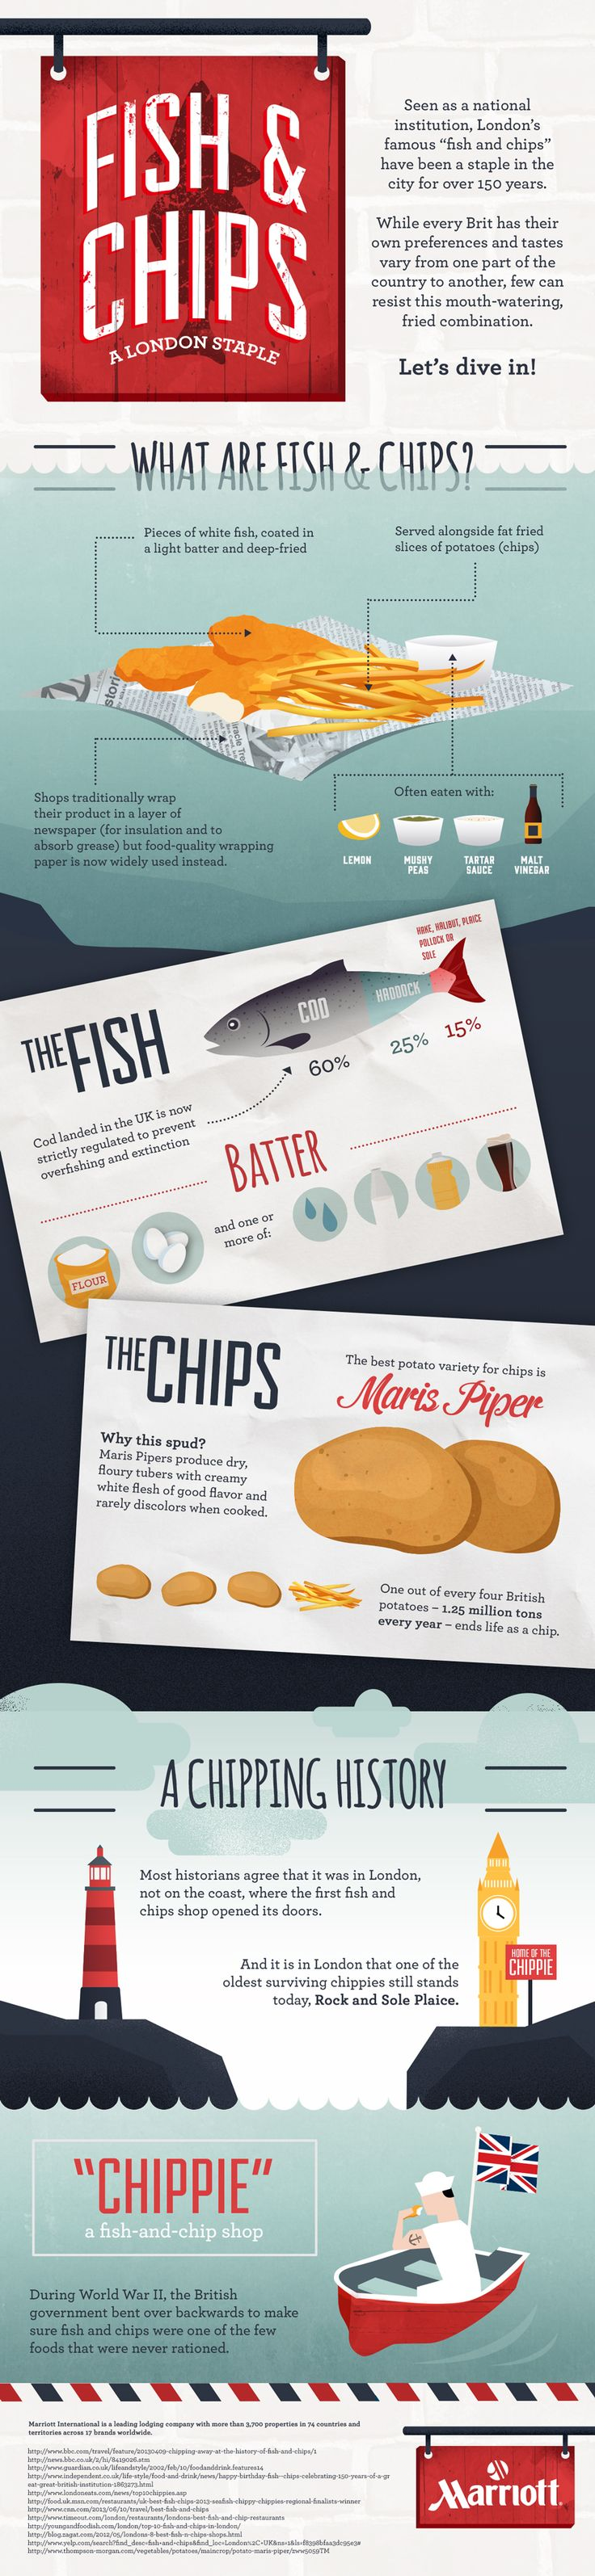 While in London, try the Fish and Chips! #Infographic